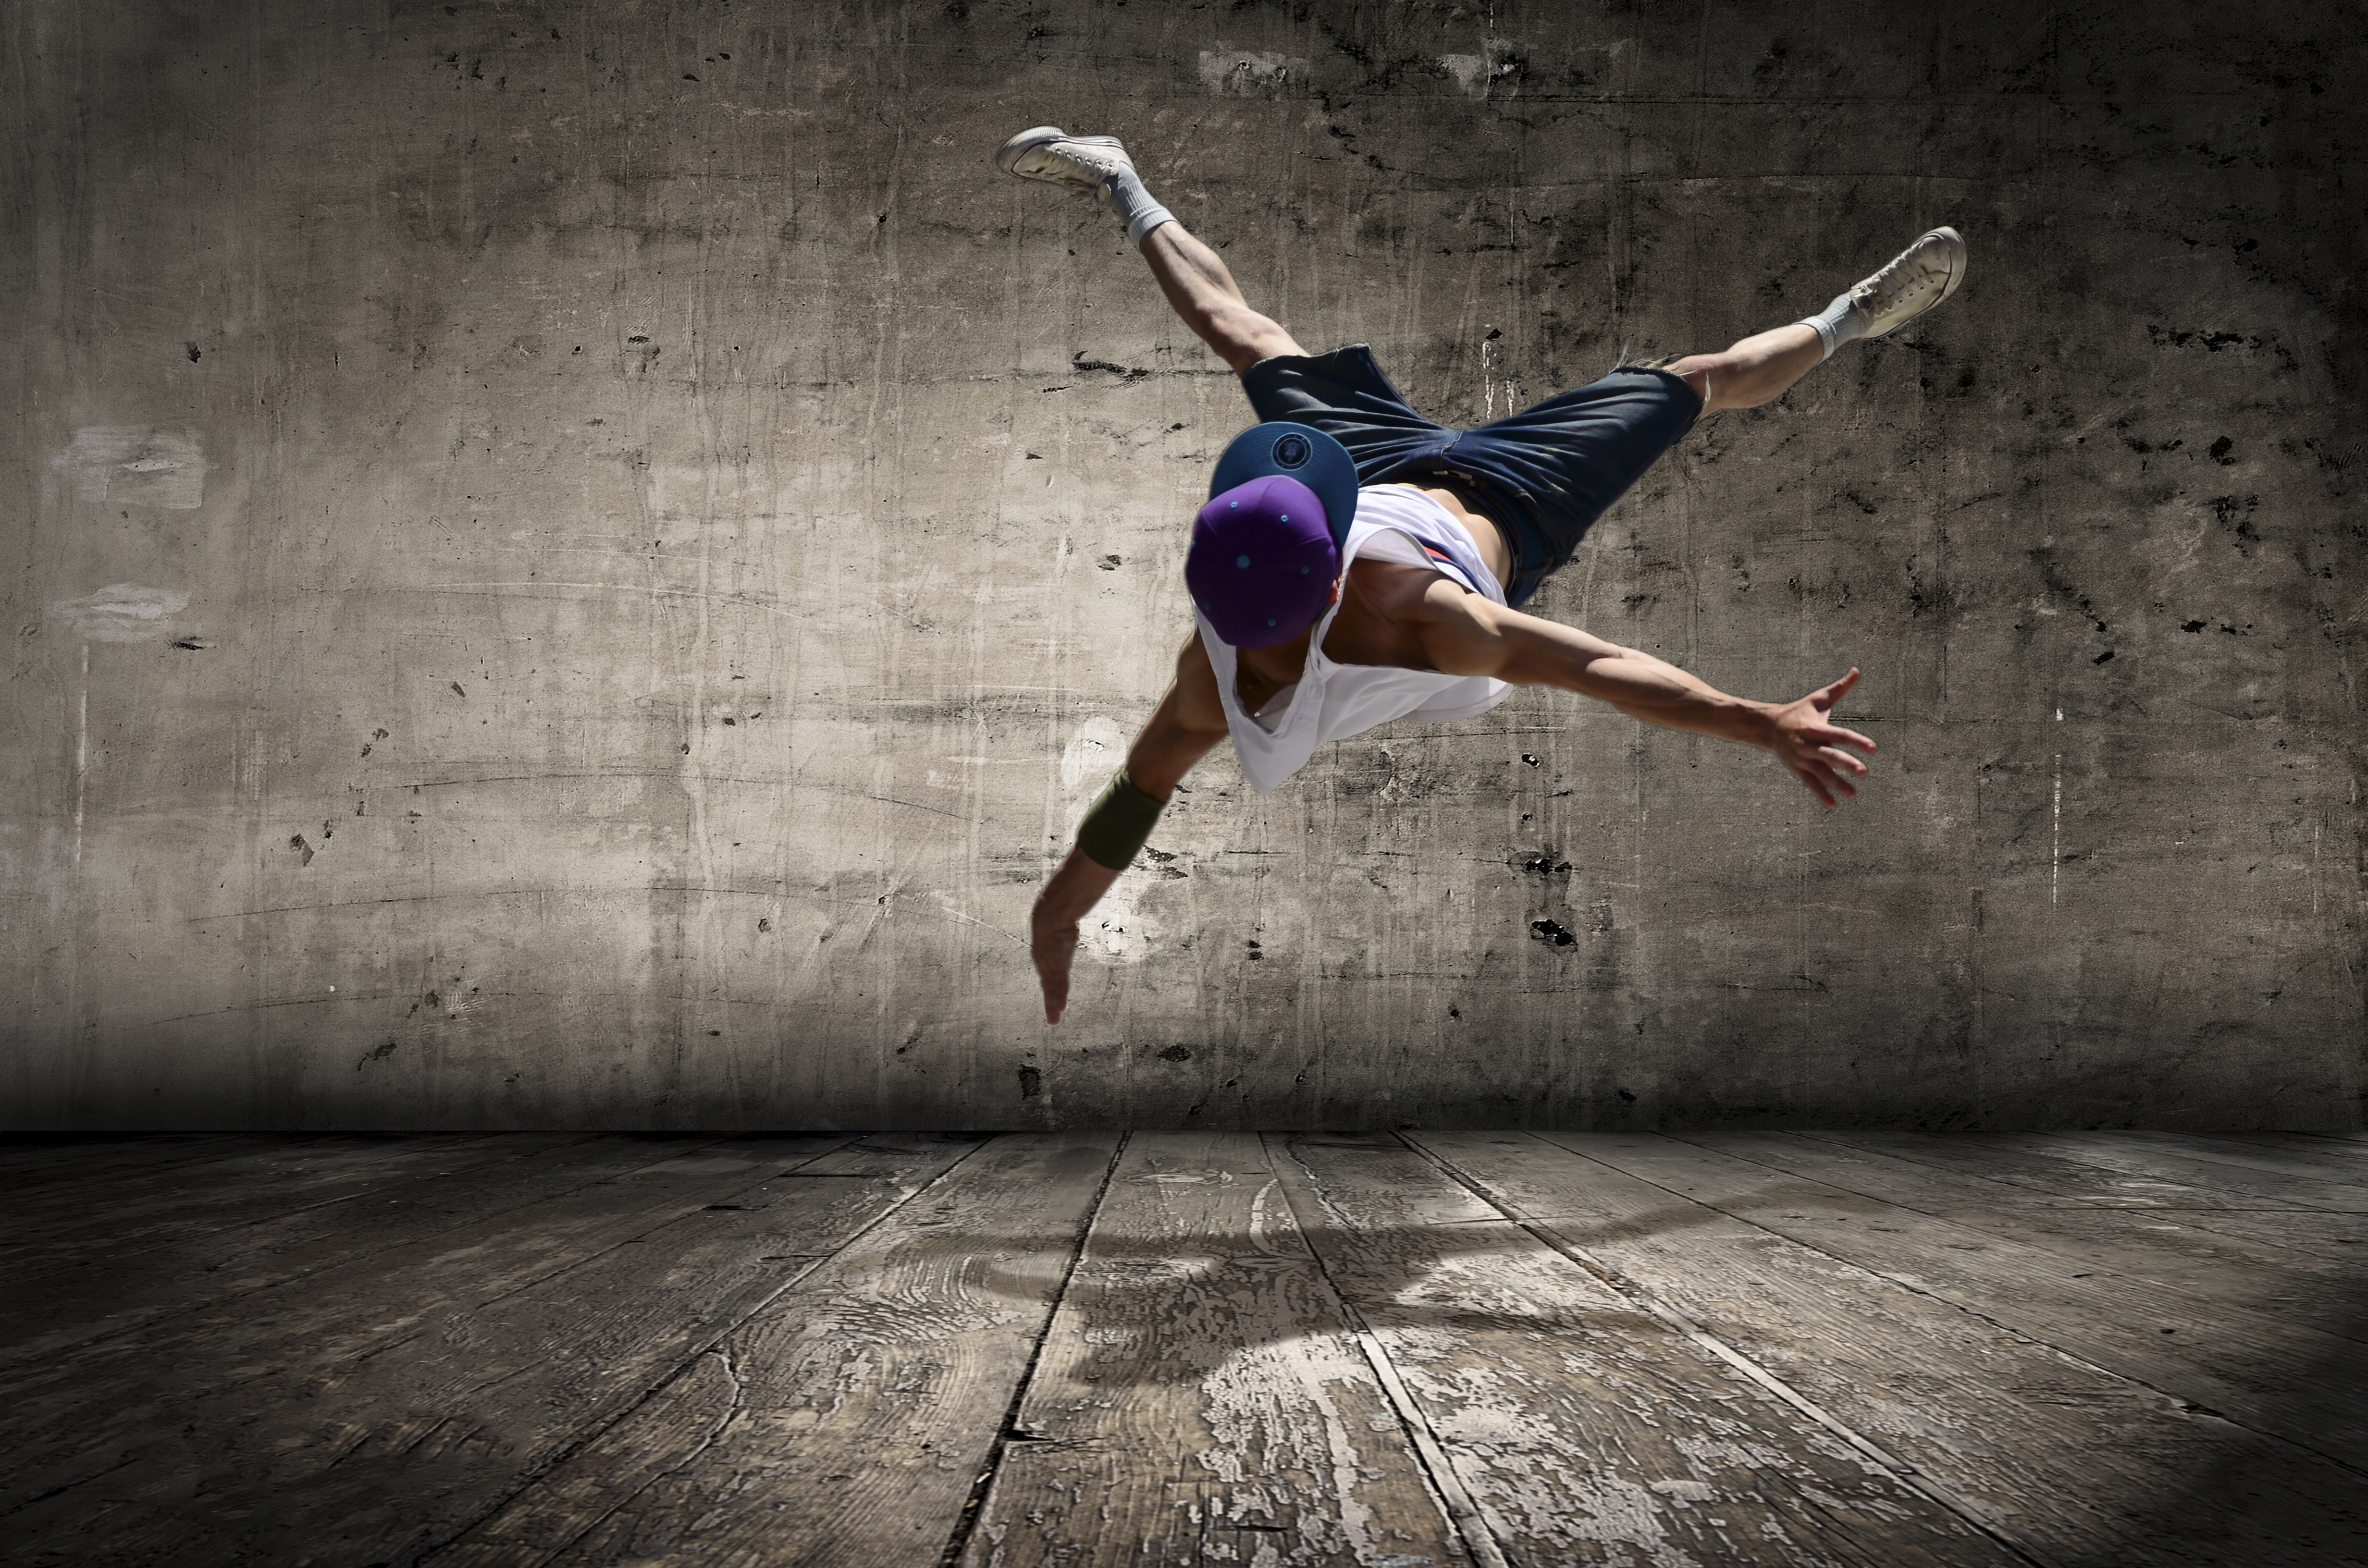 Free stock photo of active agility dancer